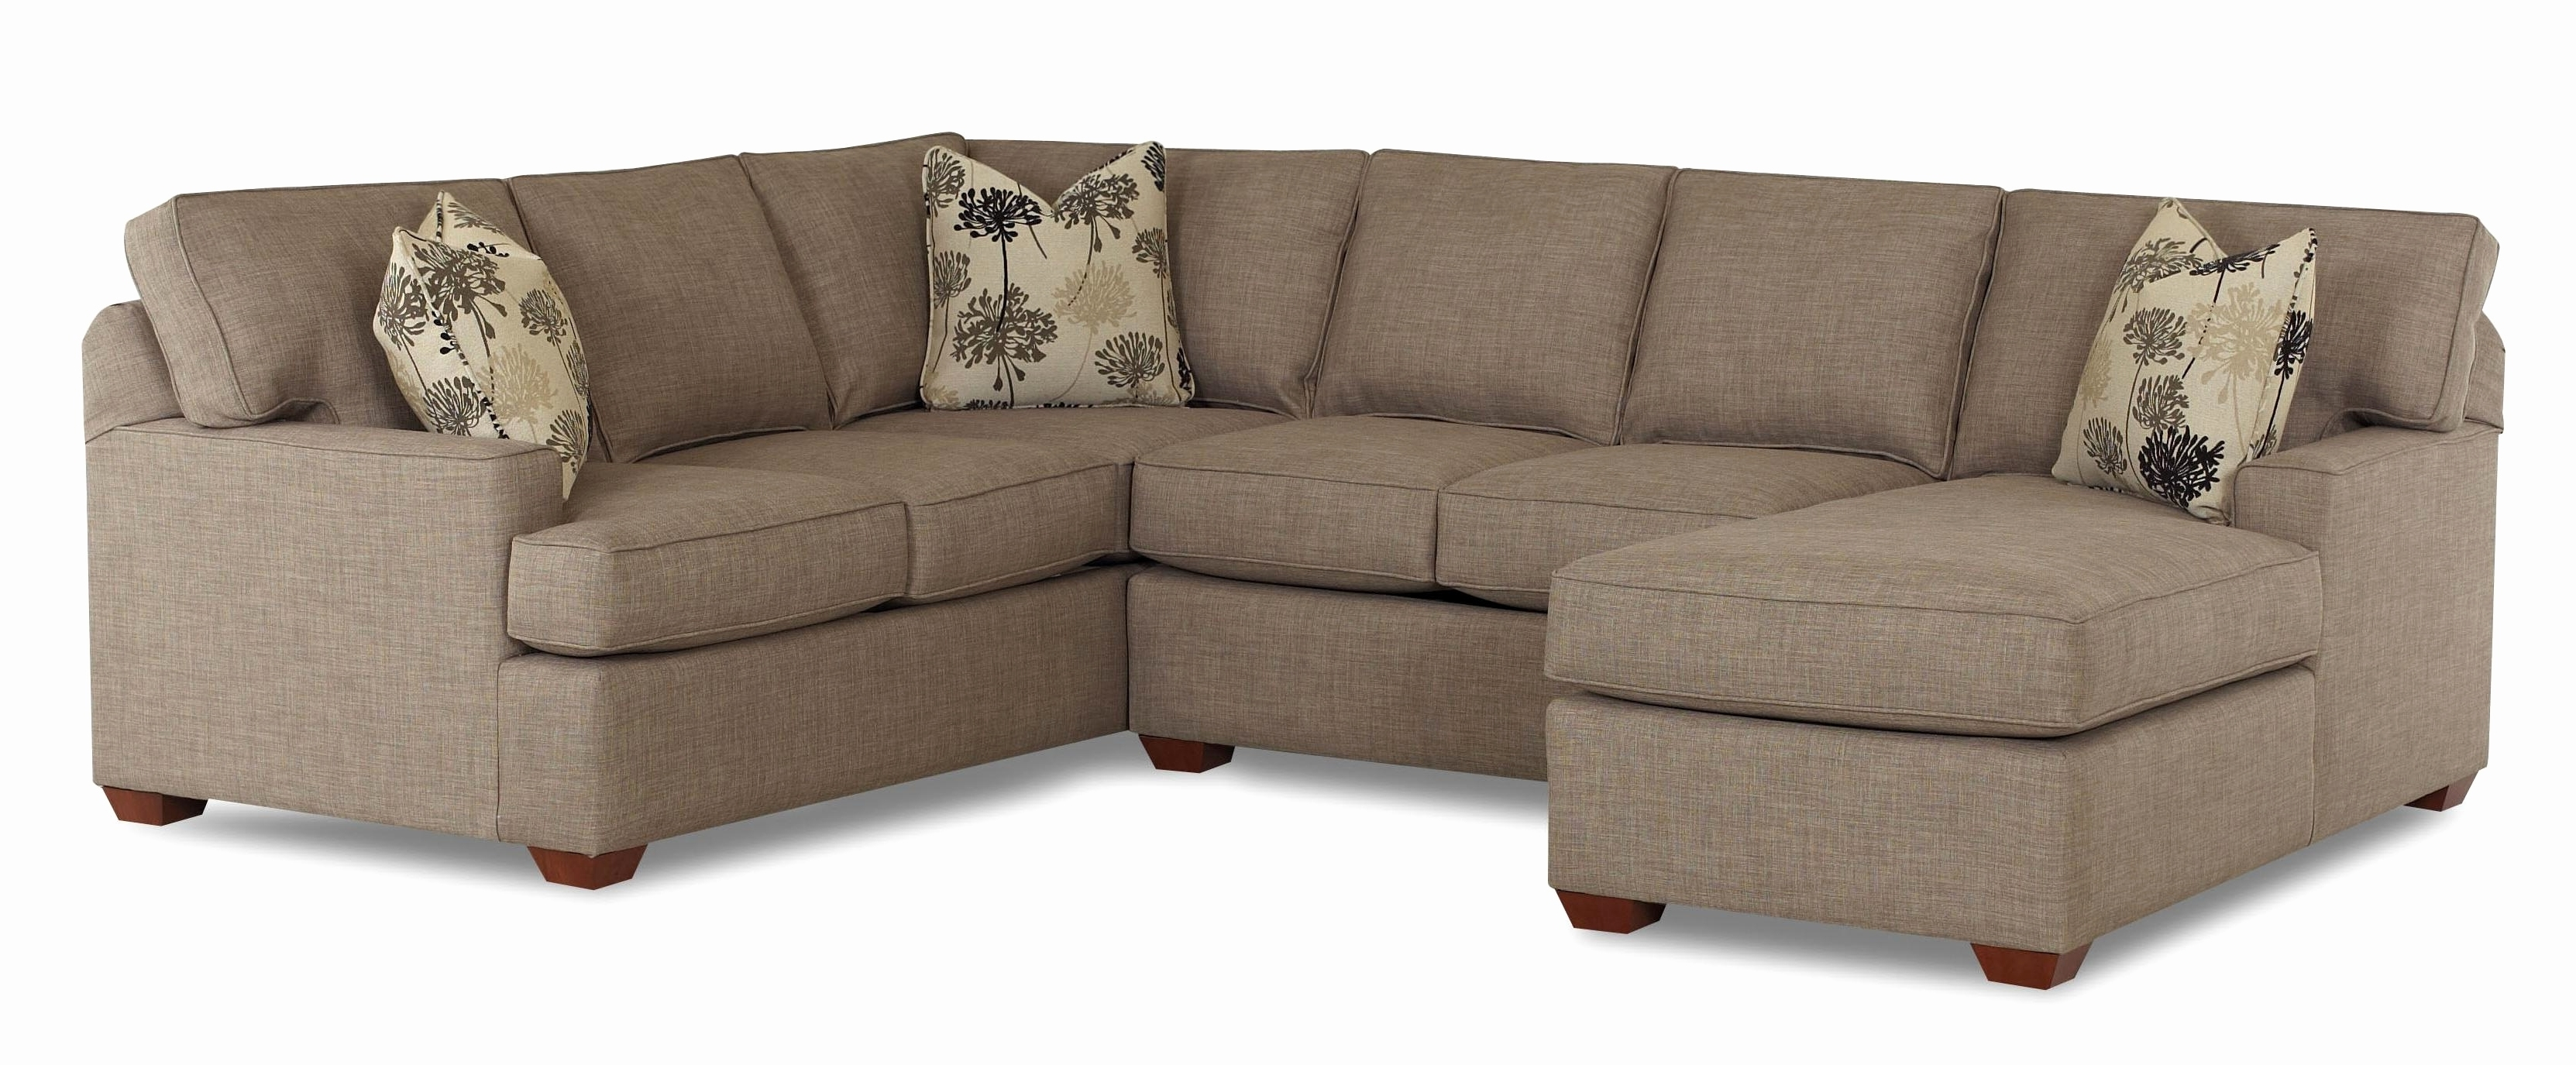 Most Recent 3 Piece Sectional Sofas With Chaise Within Luxury U Shaped Sectional With 2 Chaise 2018 – Couches And Sofas Ideas (View 13 of 15)